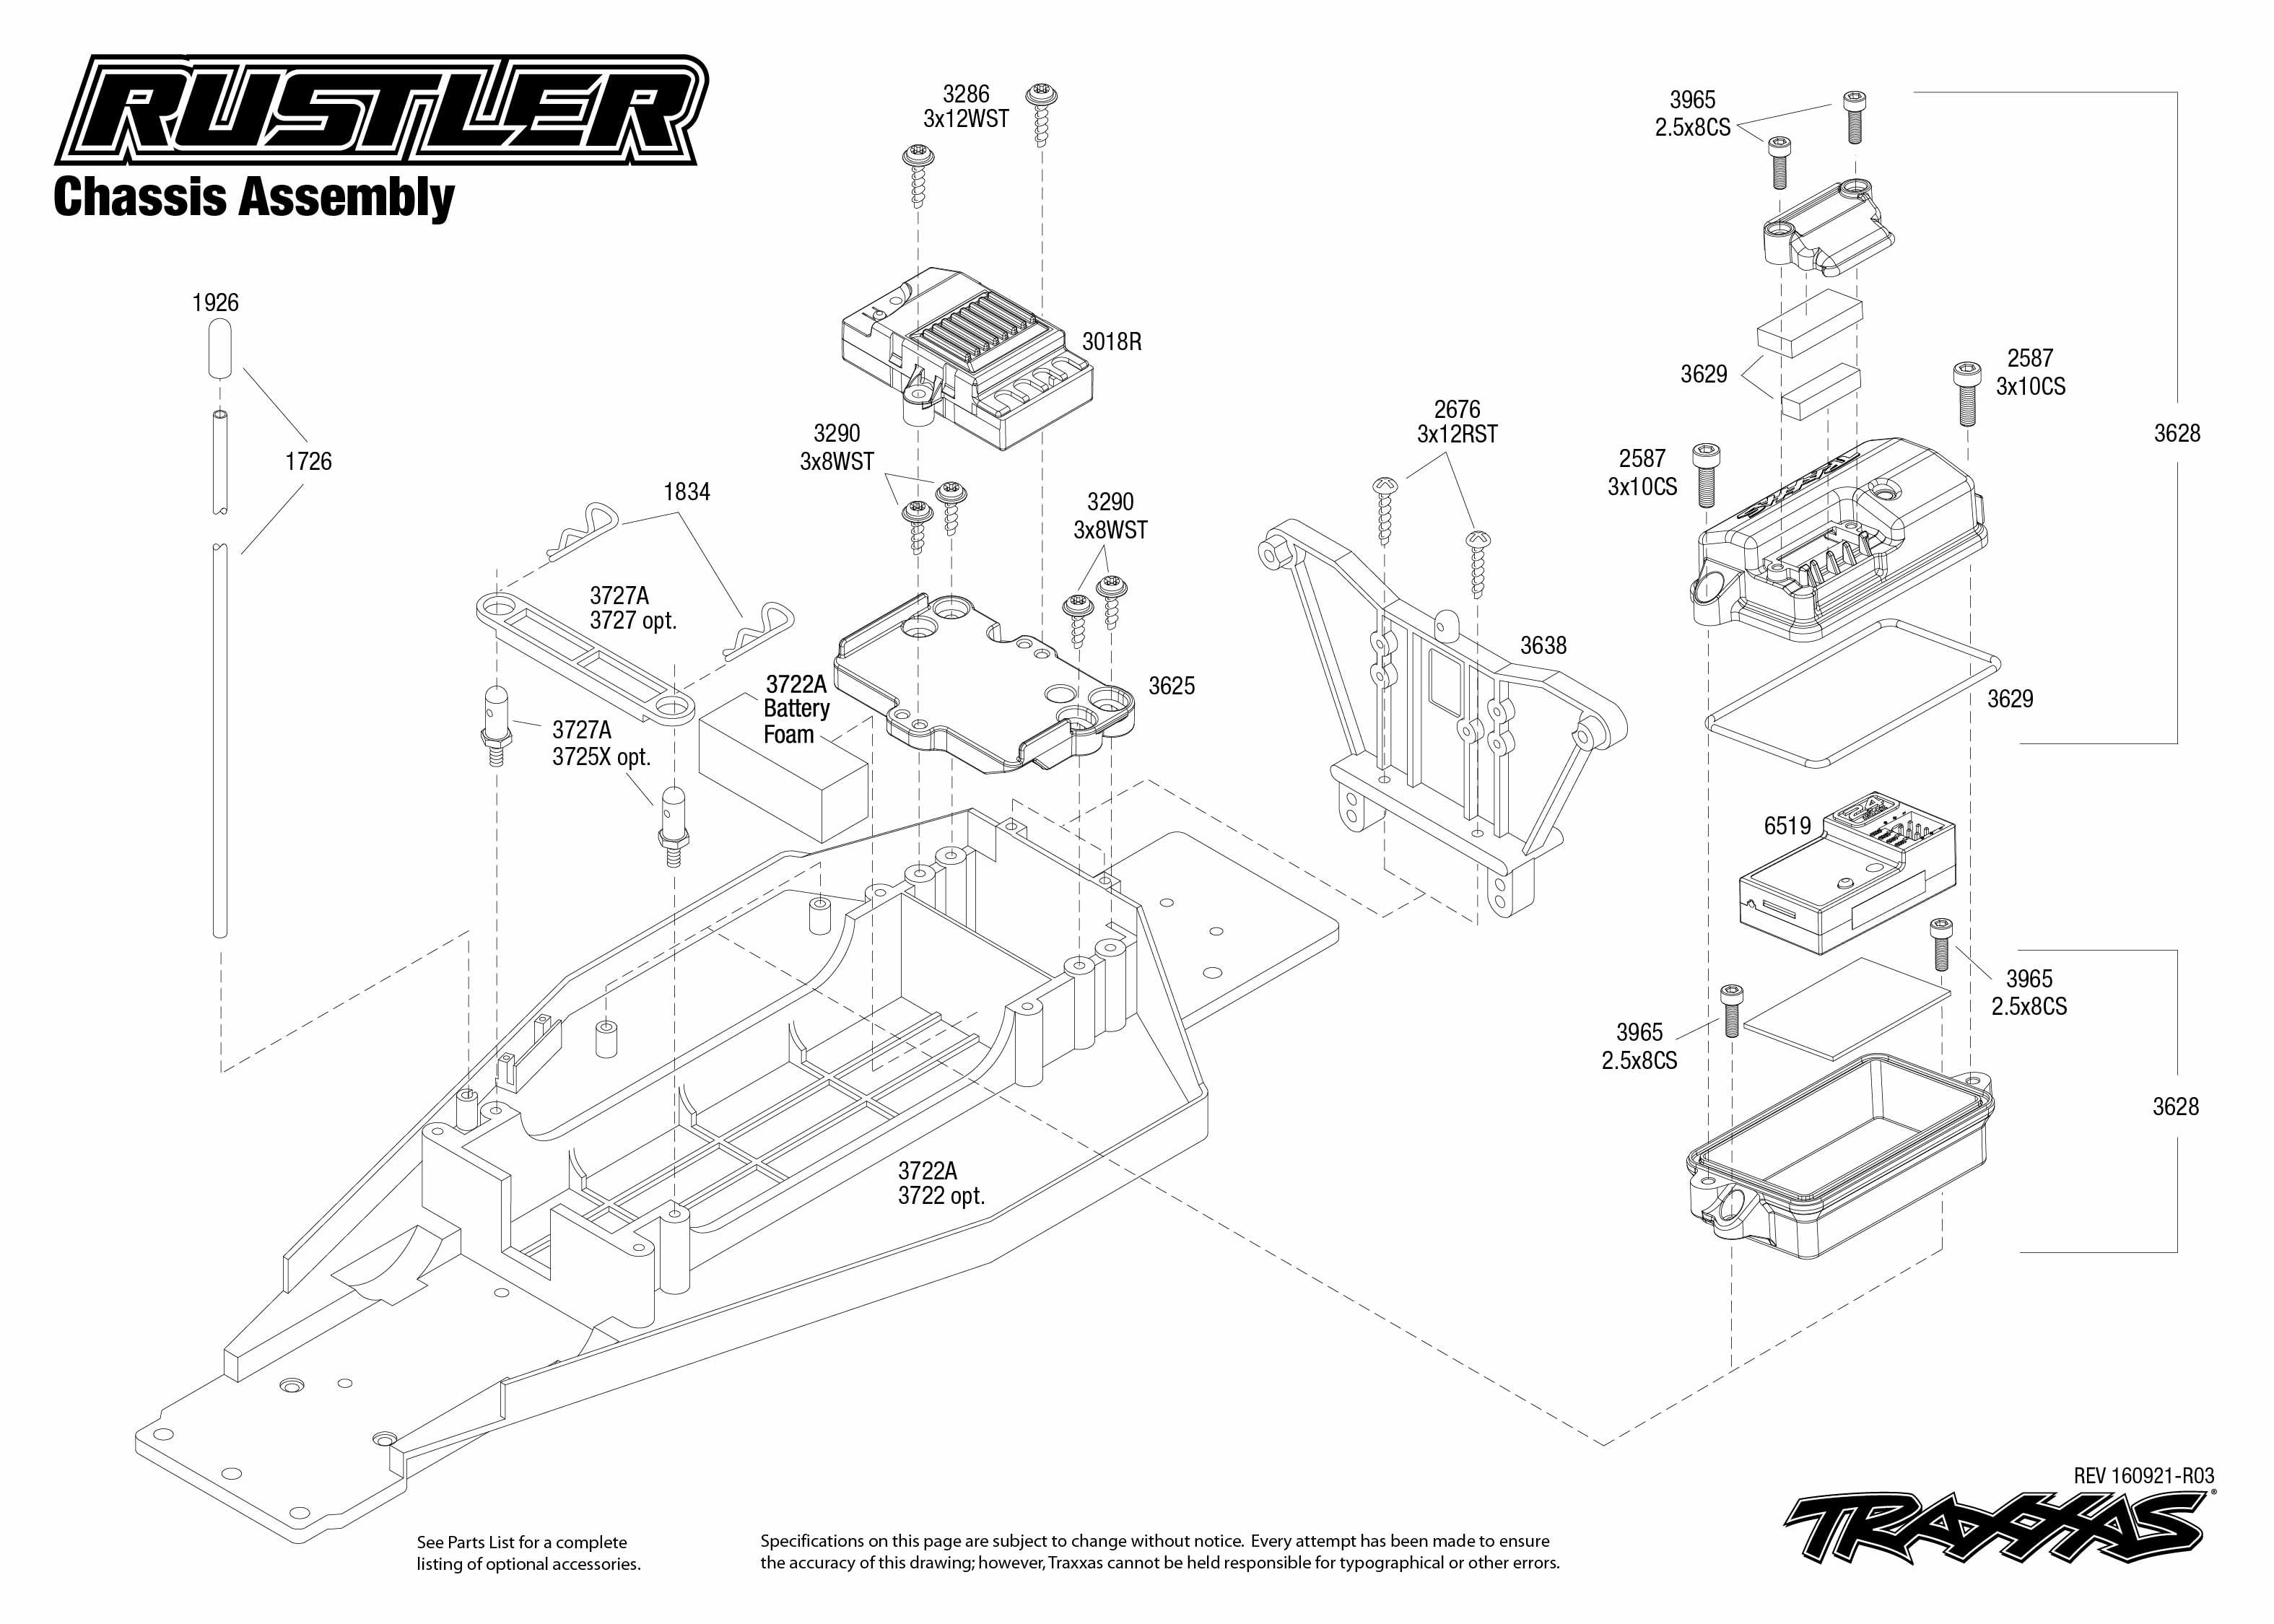 rustler 37054 1 chassis assembly exploded view traxxas [ 3150 x 2250 Pixel ]